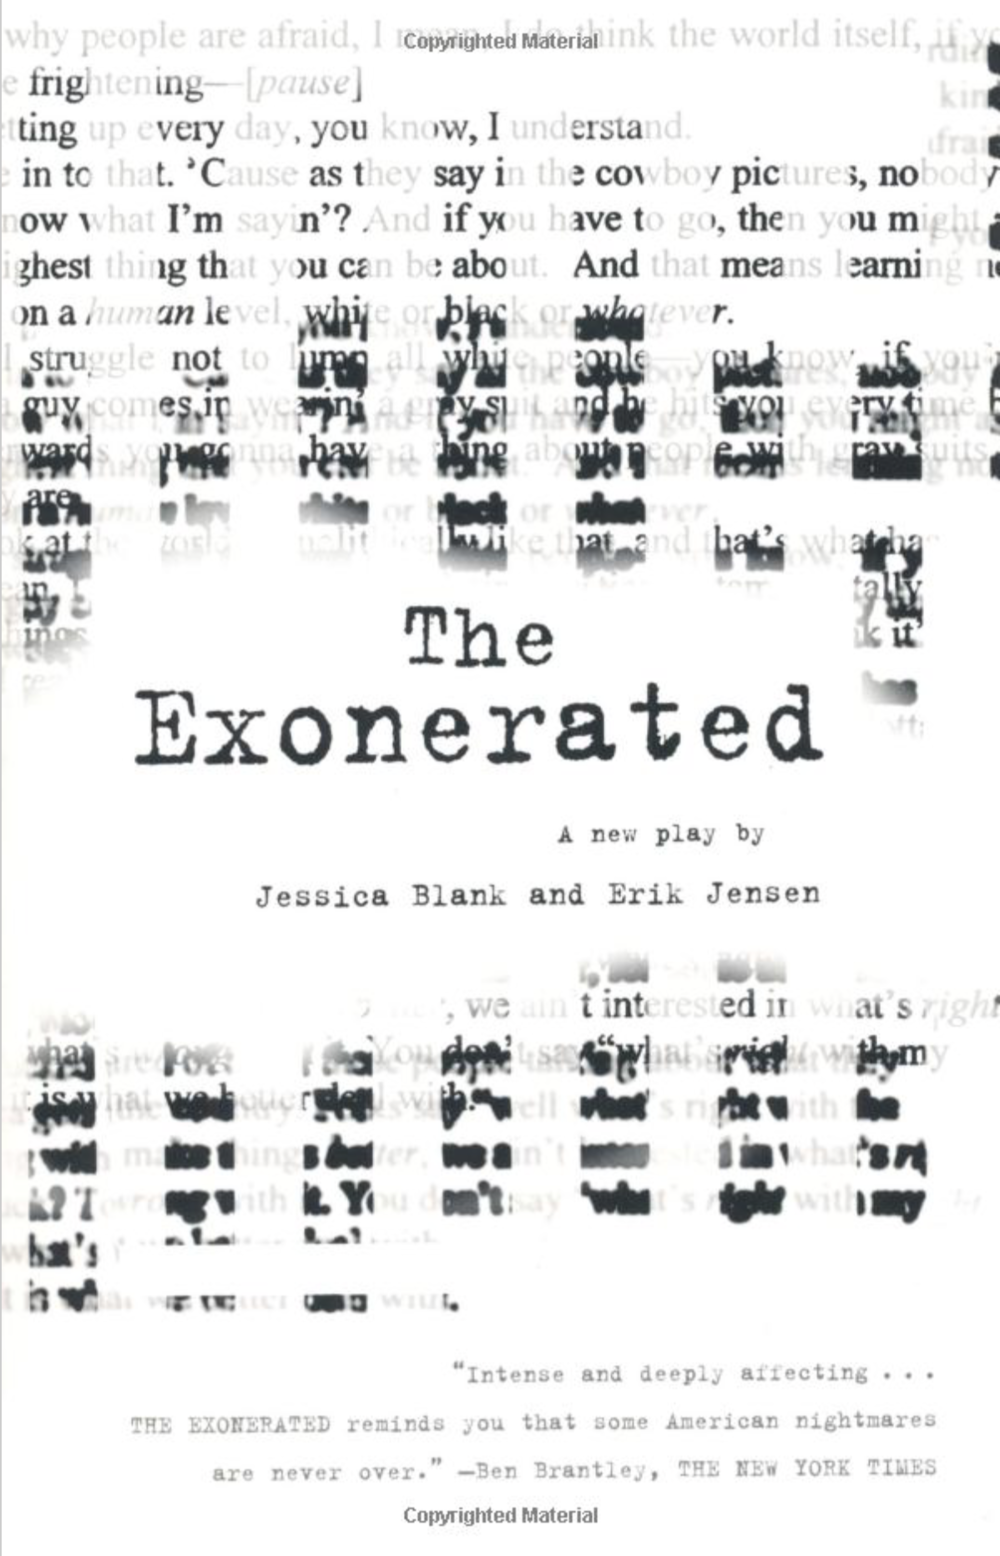 Book: The Exonerated - By Jessica Blank